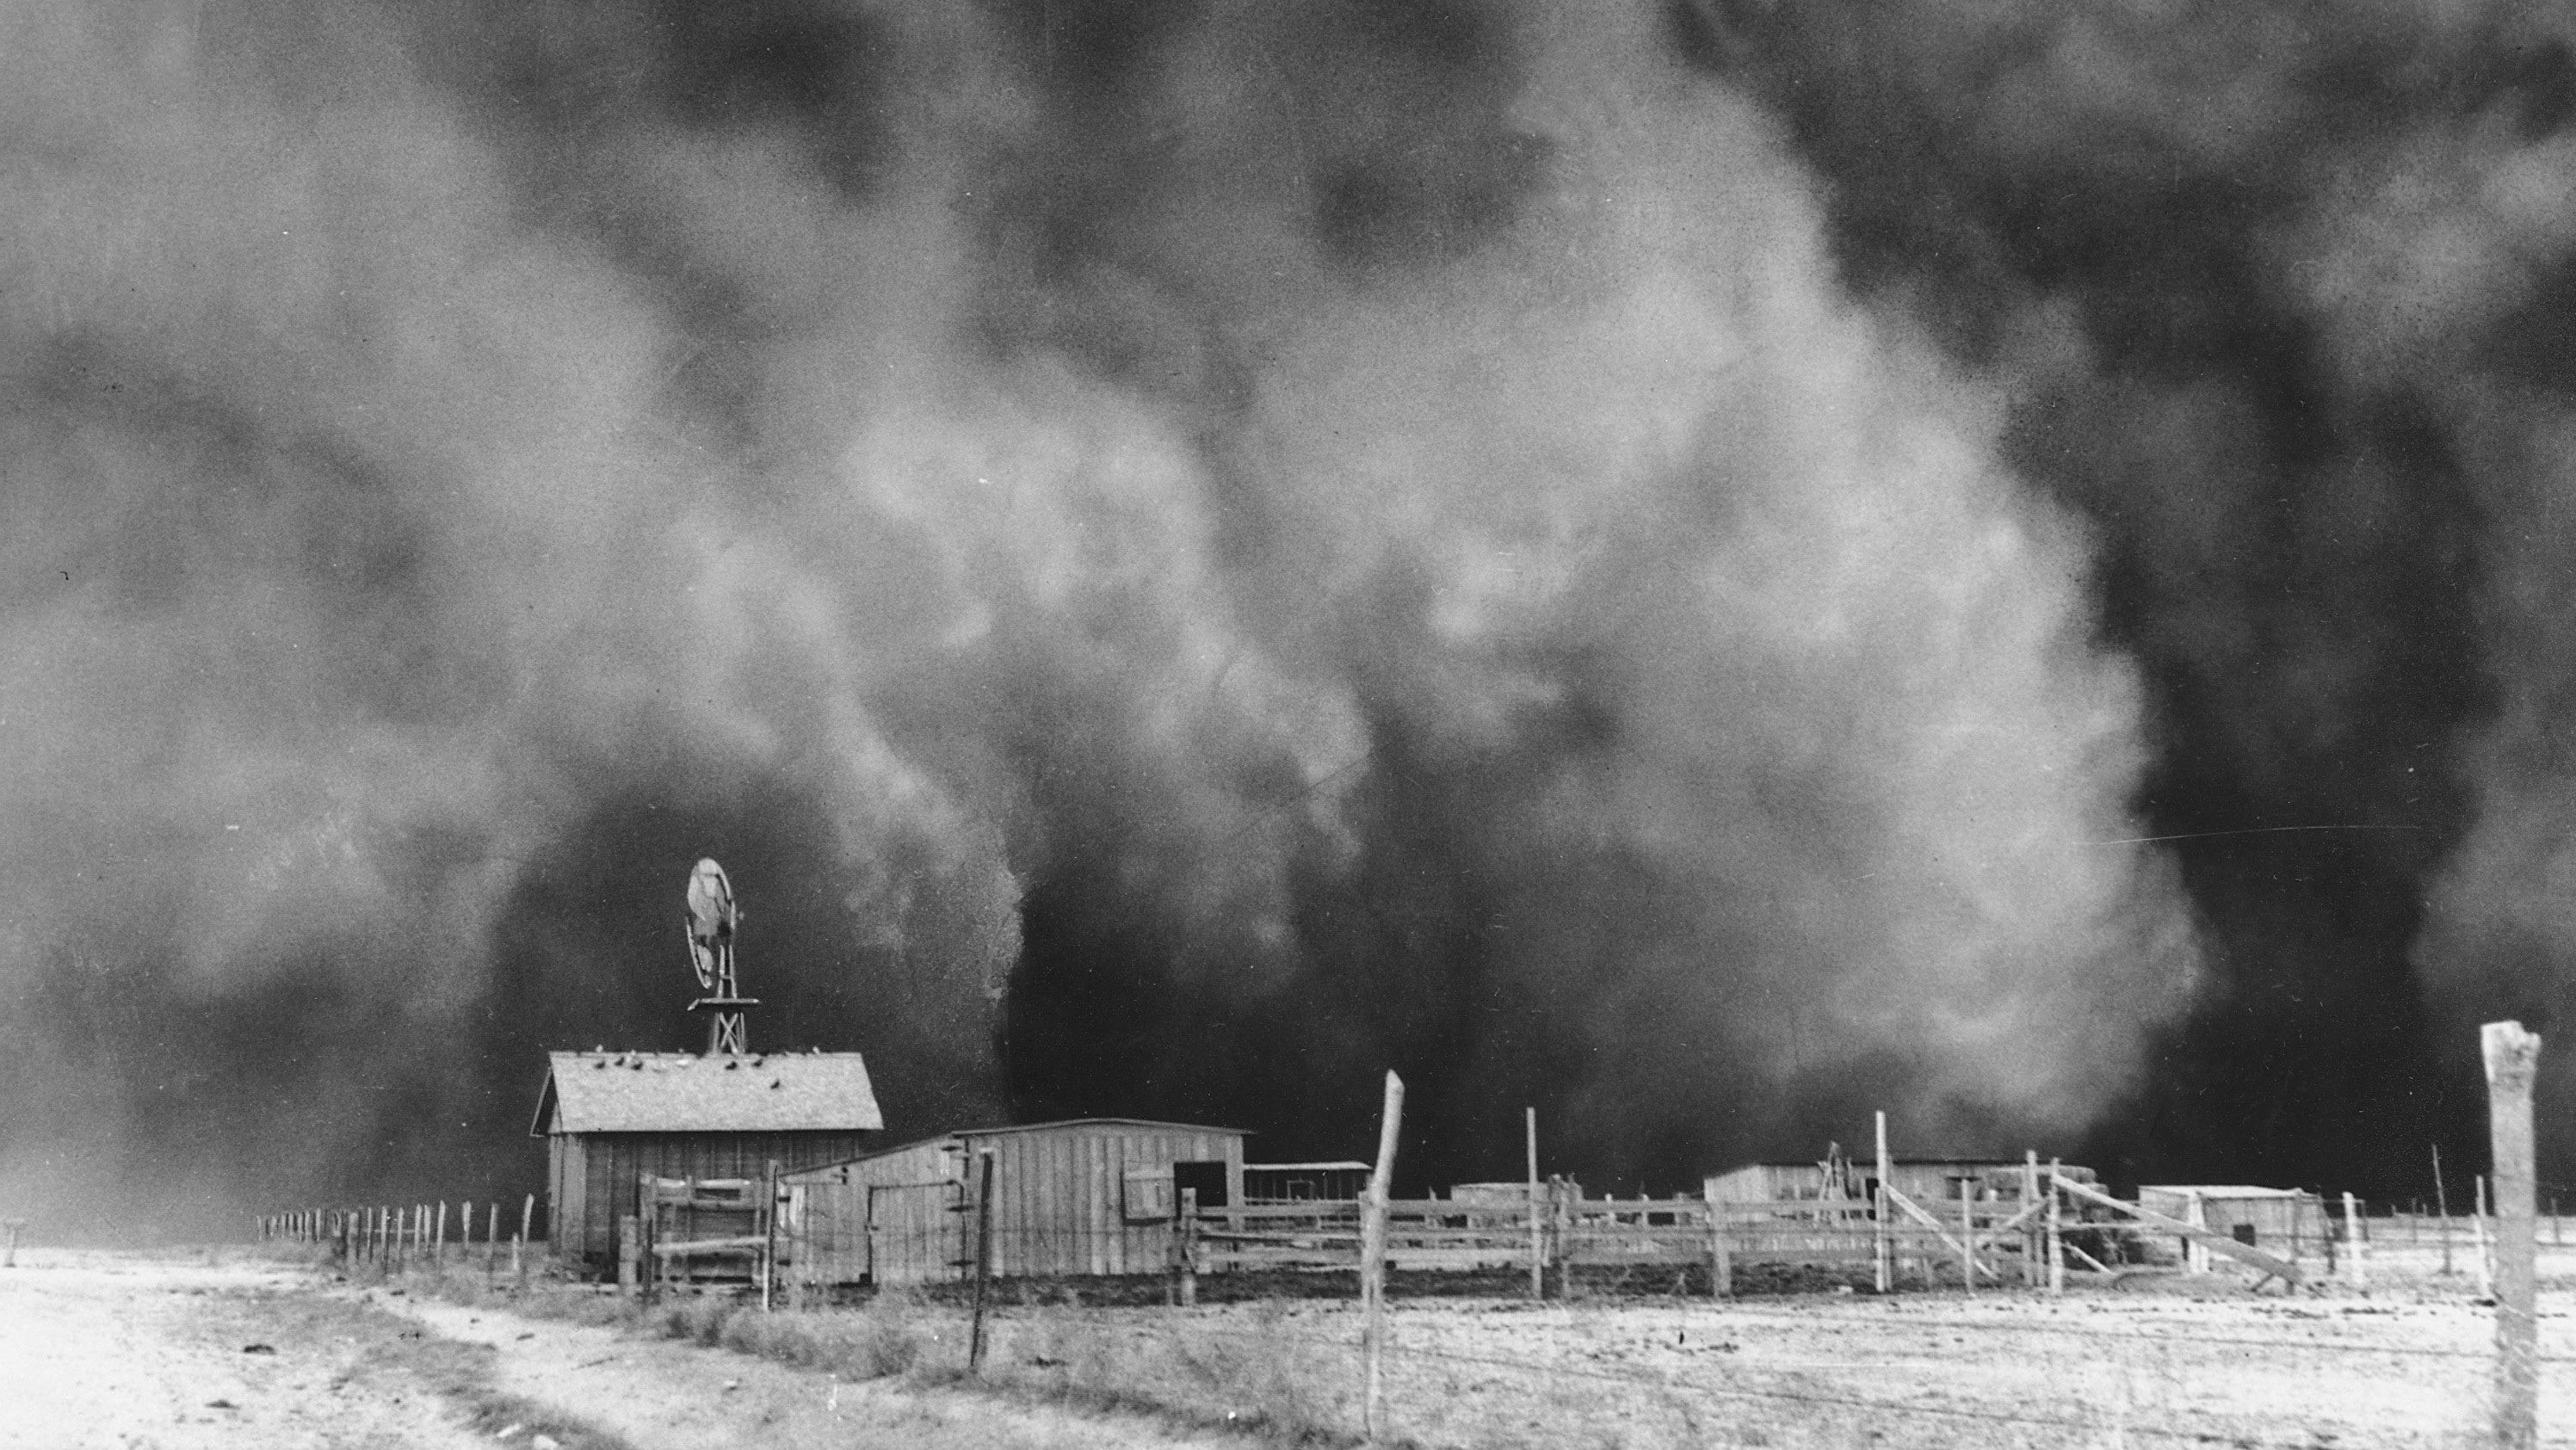 A Second Dust Bowl Could Threaten Global Food Security